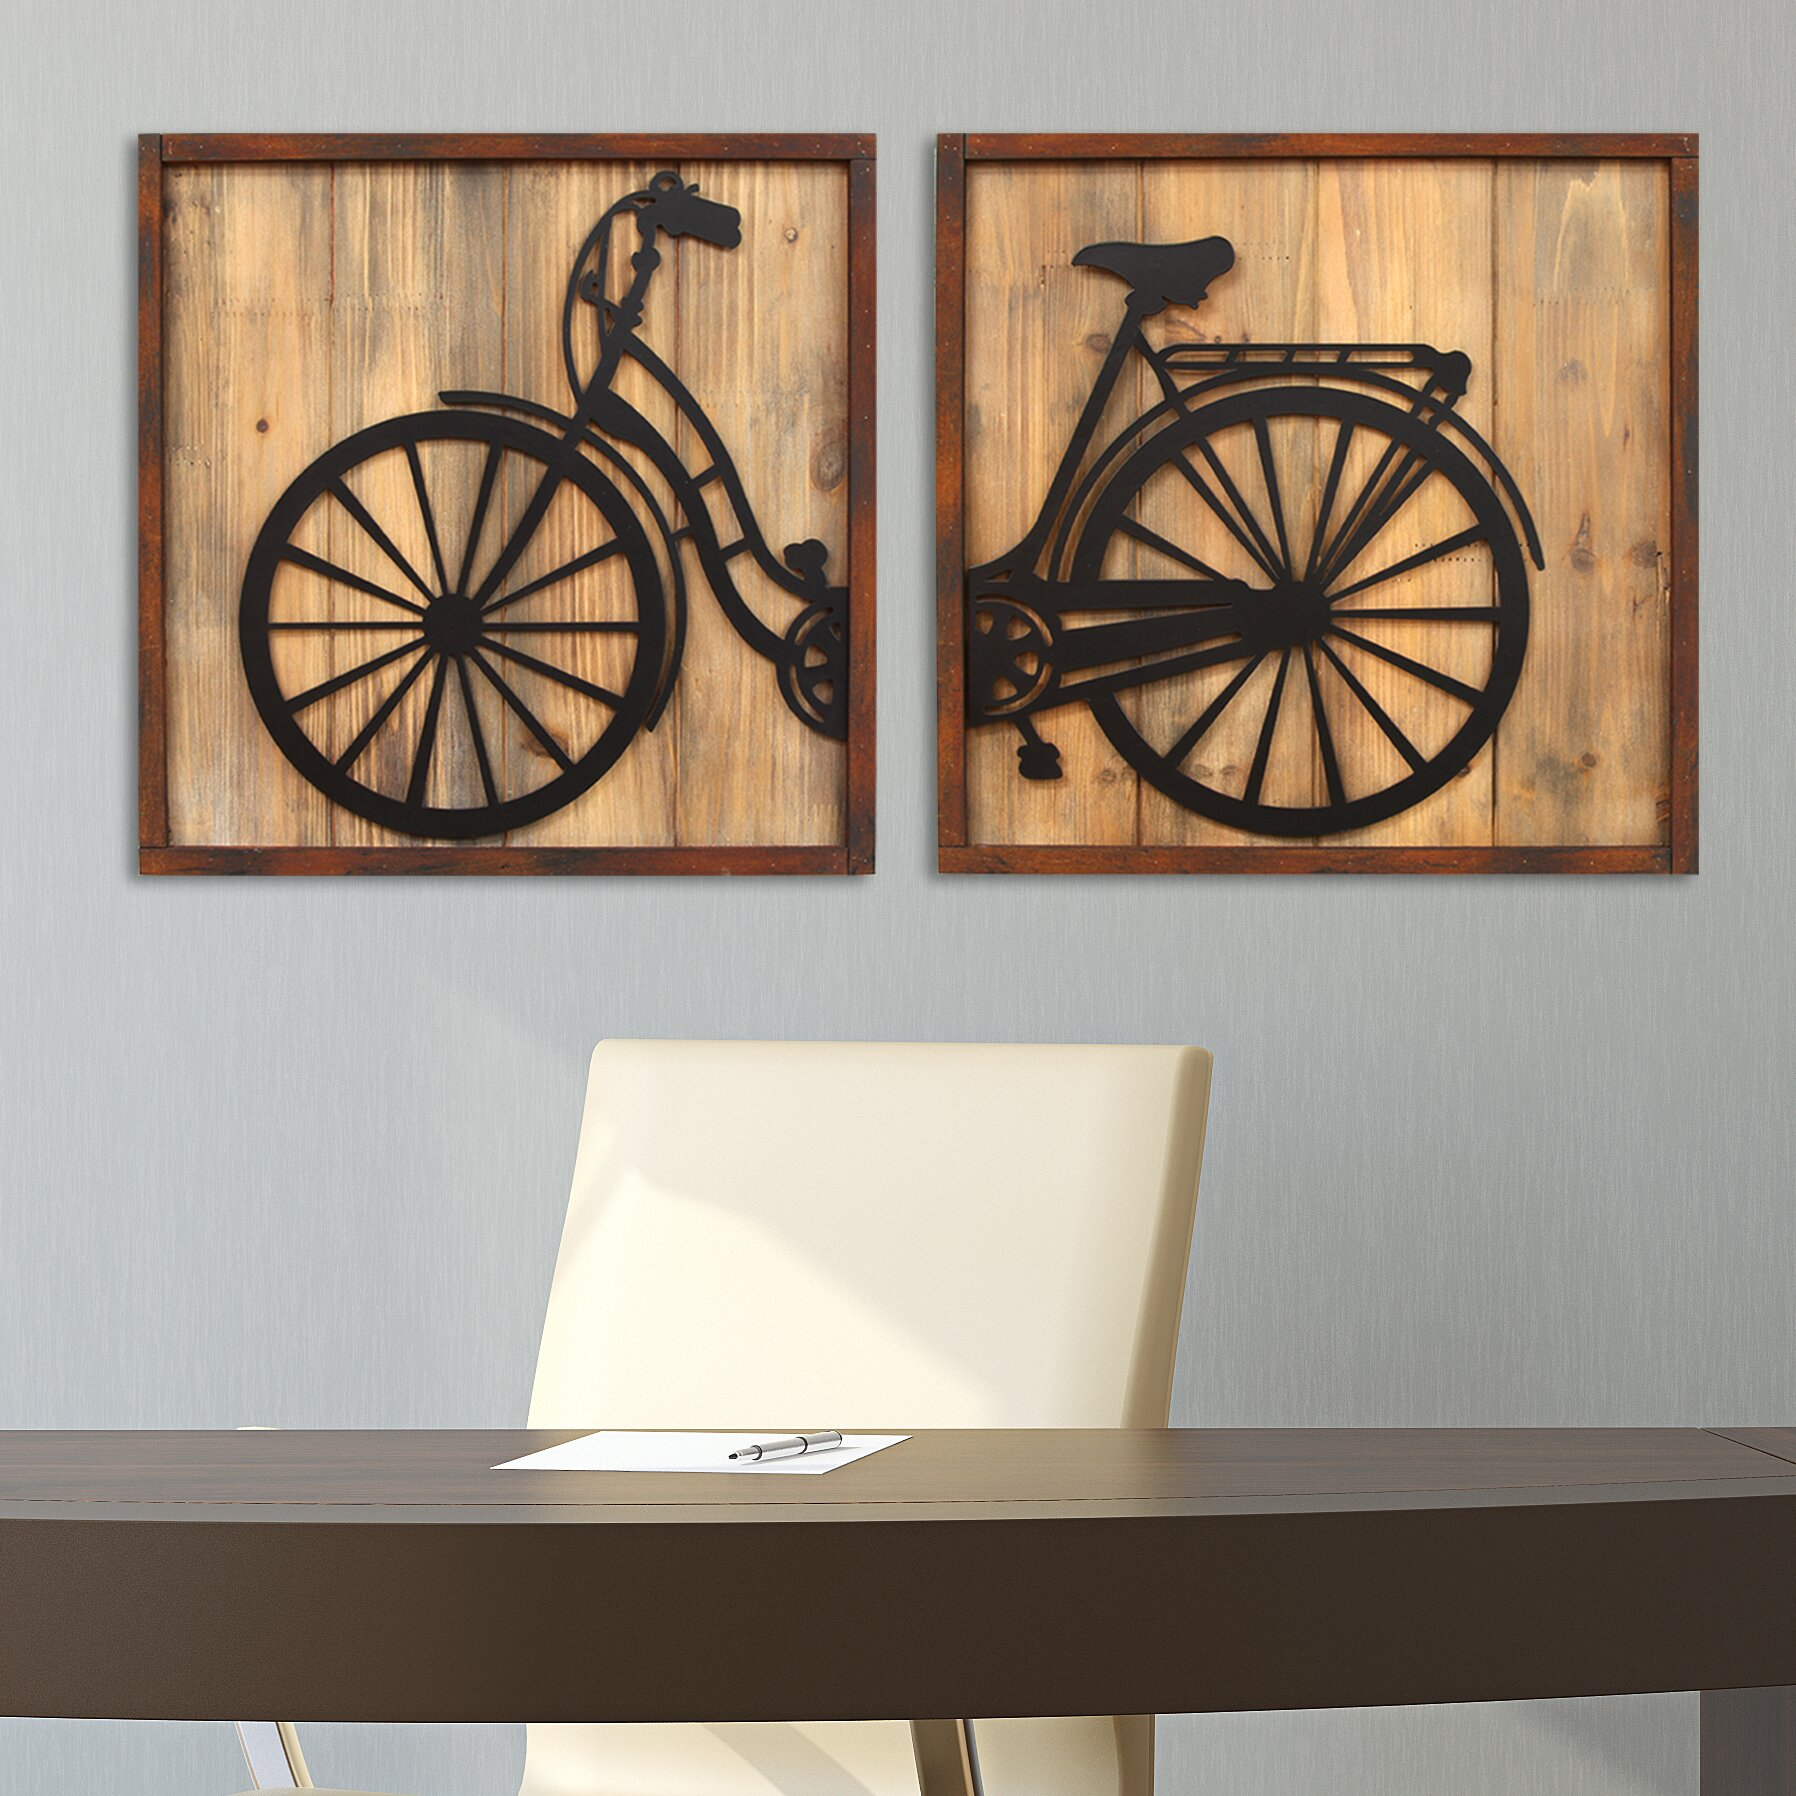 Wall Decor For Home Stratton Home Decor 2 Piece Retro Bicycle Panels Wall Dccor Set